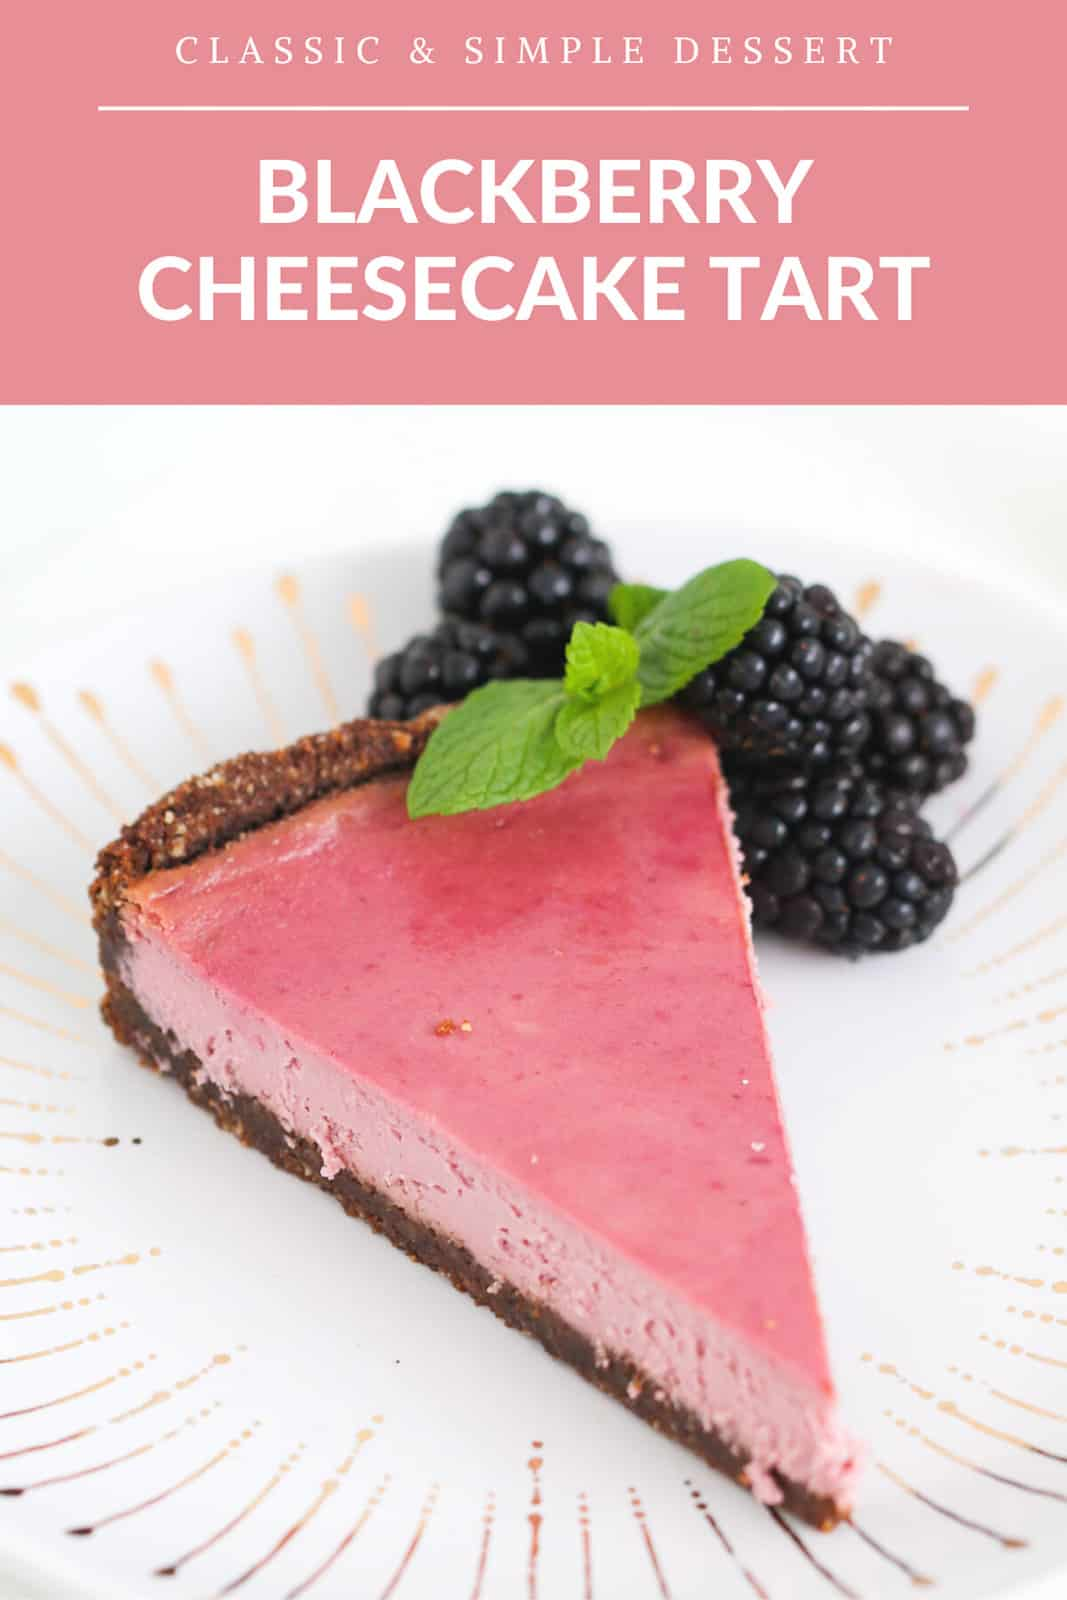 A slice of blackberry cheesecake tart on a white and gold plate with fresh blackberries and mint leaves.